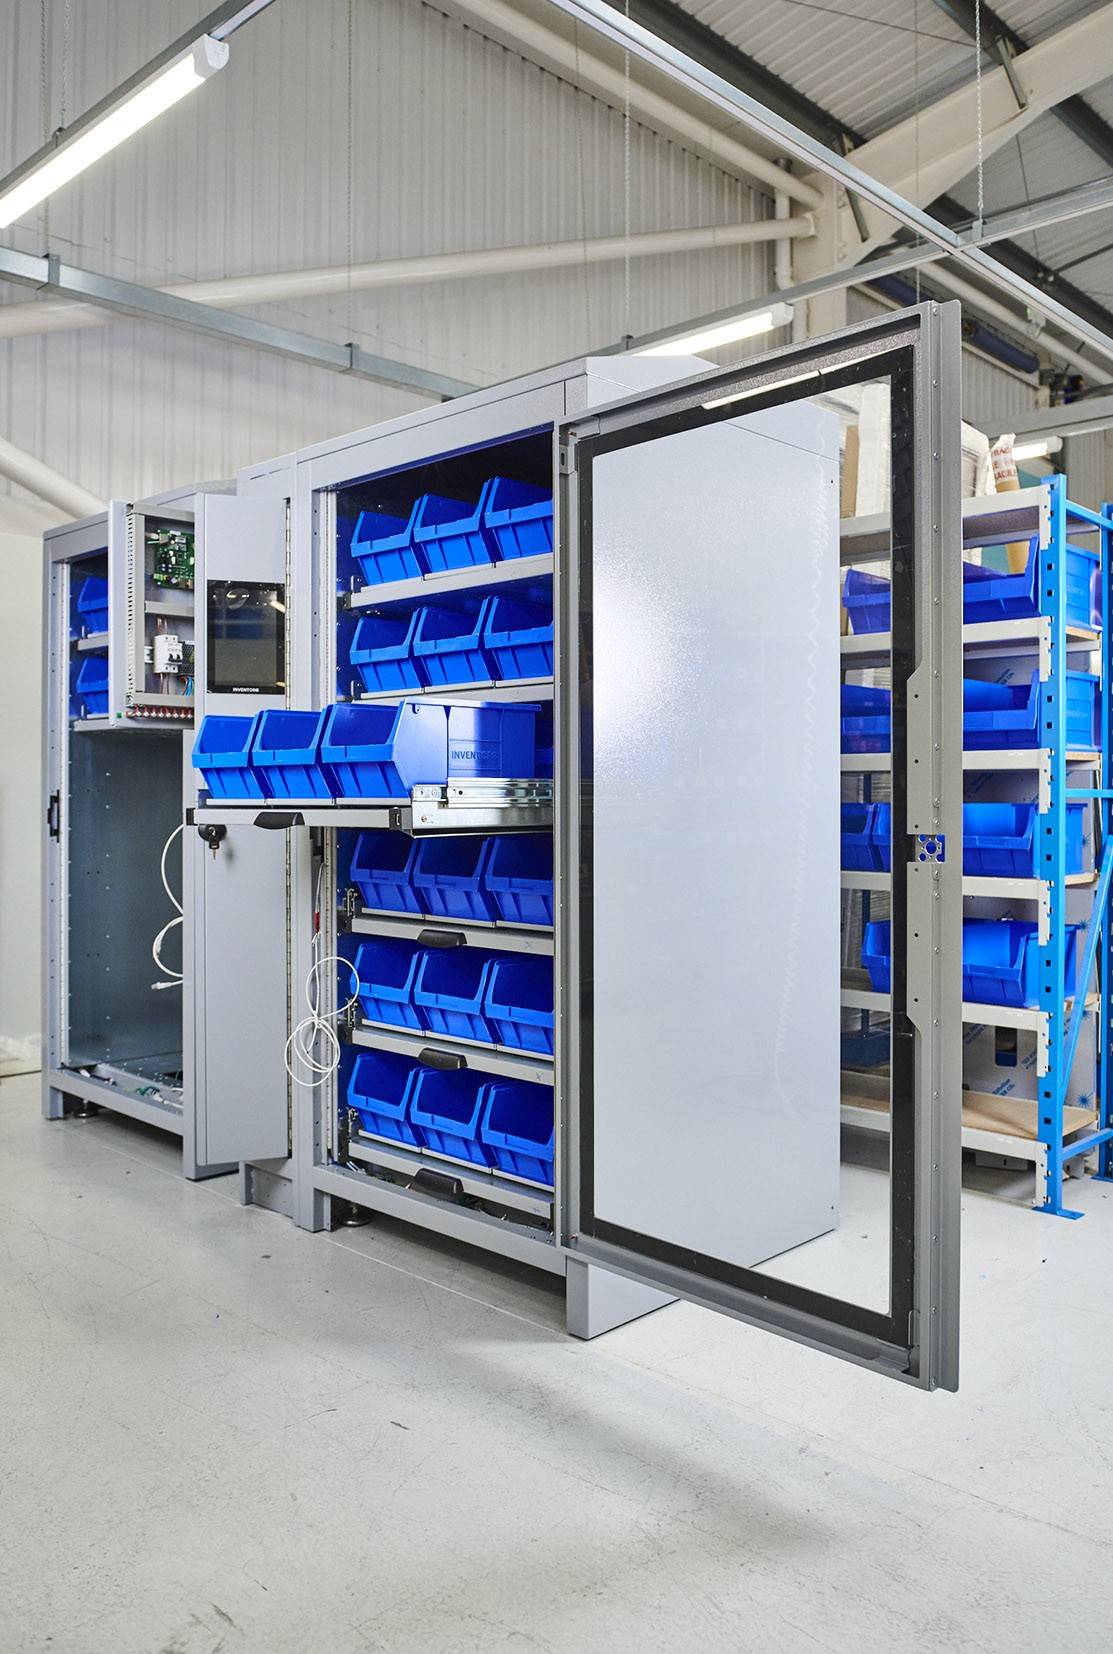 Inventor-e taps into the power of MAN to target £3m inventory management opportunity » Inventor e Product » PP Control & Automation